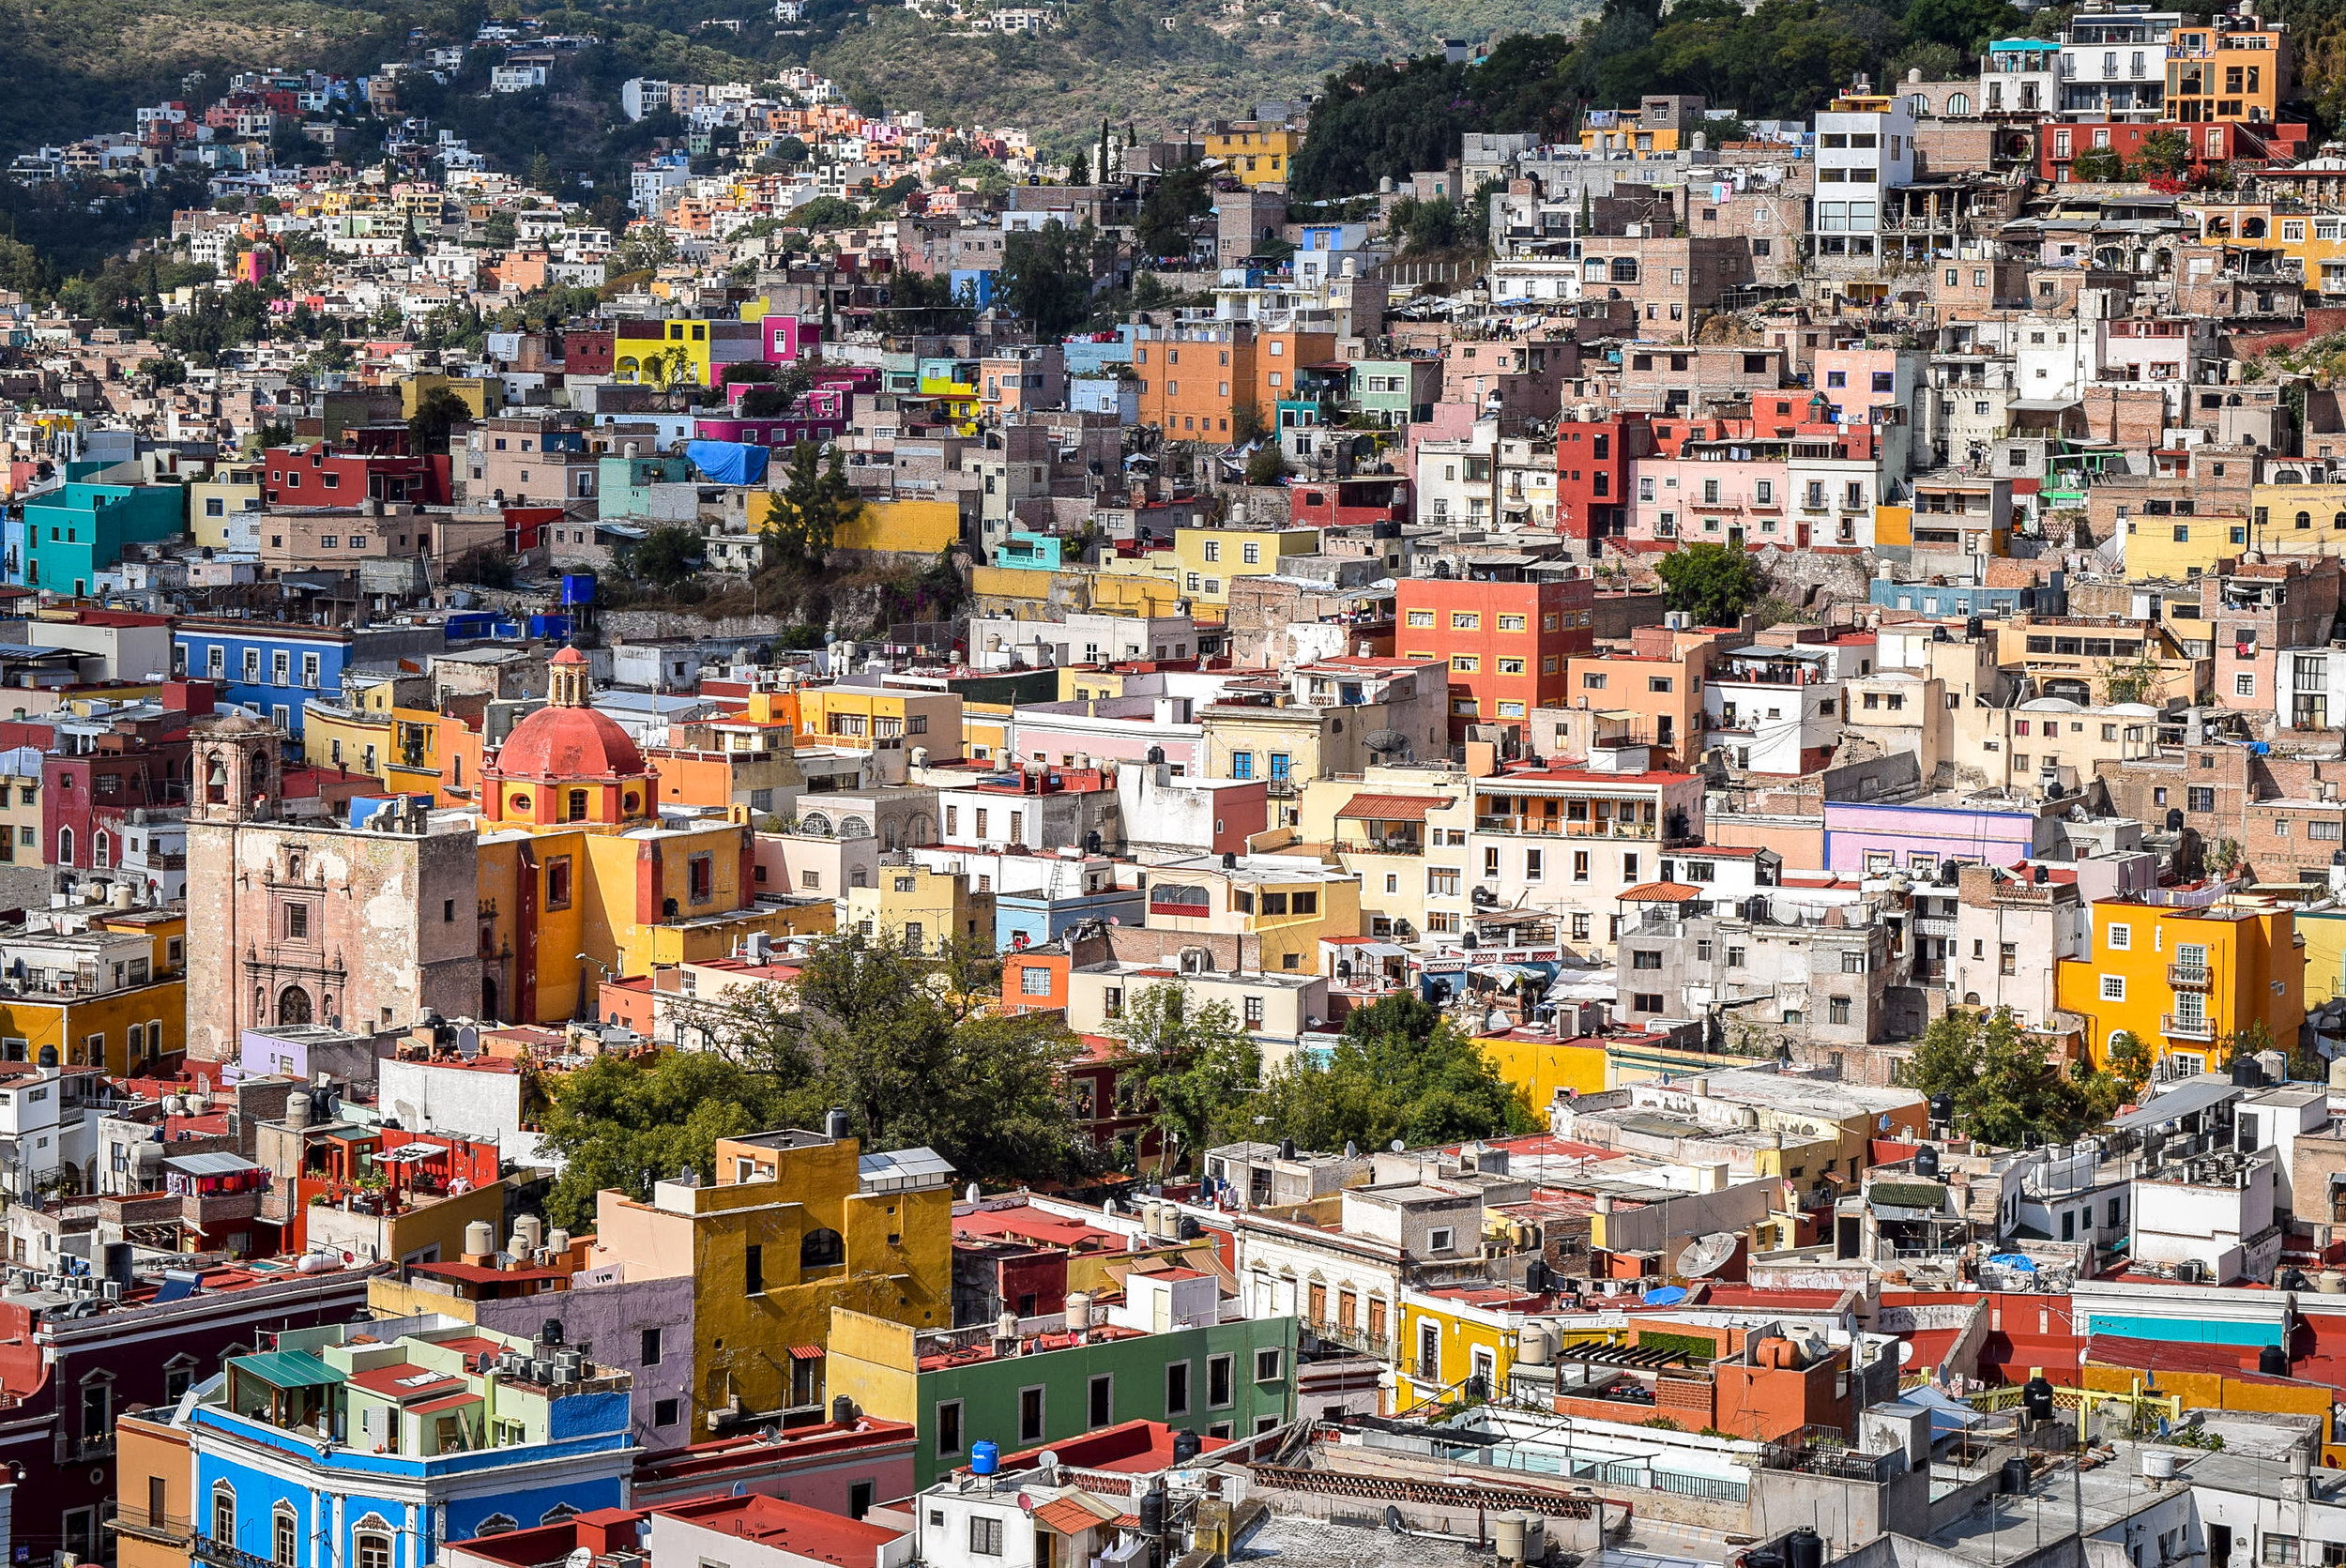 Colorful building in Guanajuato